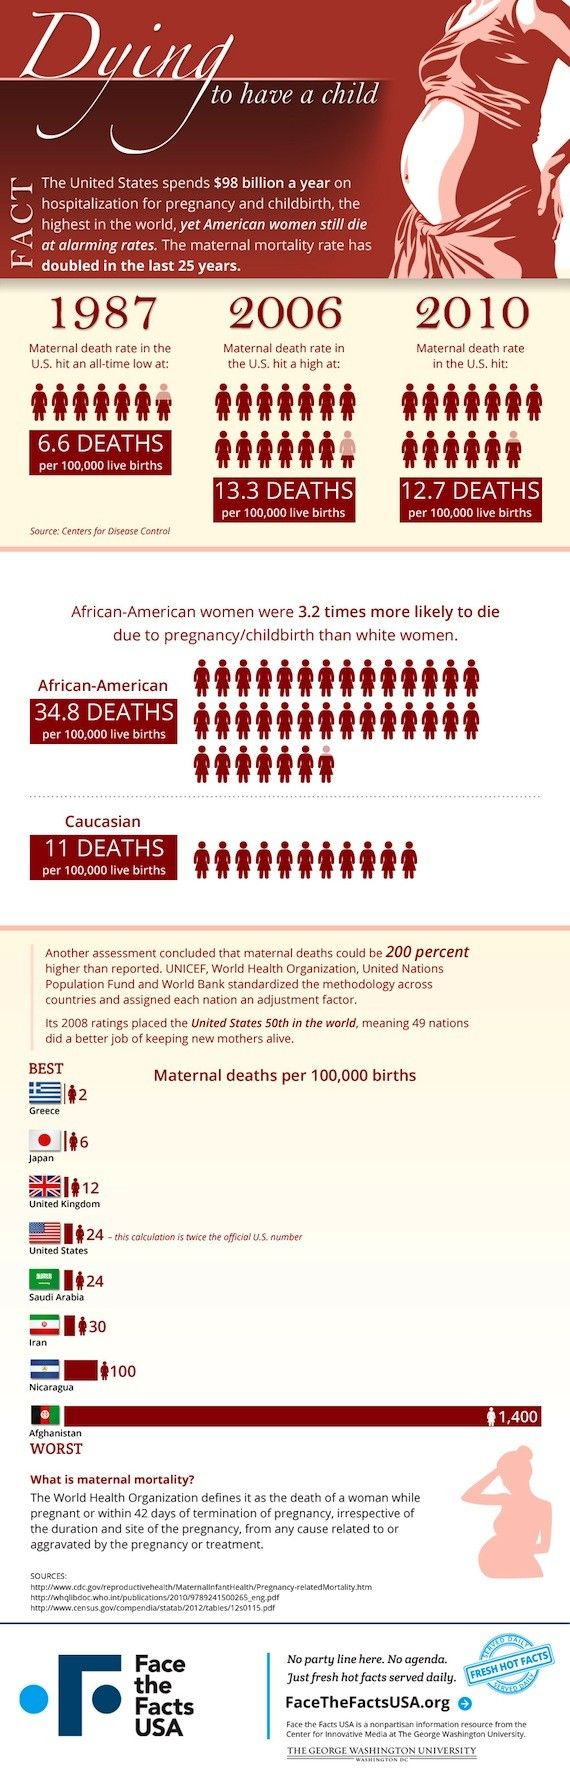 Why has the maternal mortality rate in the US been on the rise despite high investment? See how others match up in this infographic.